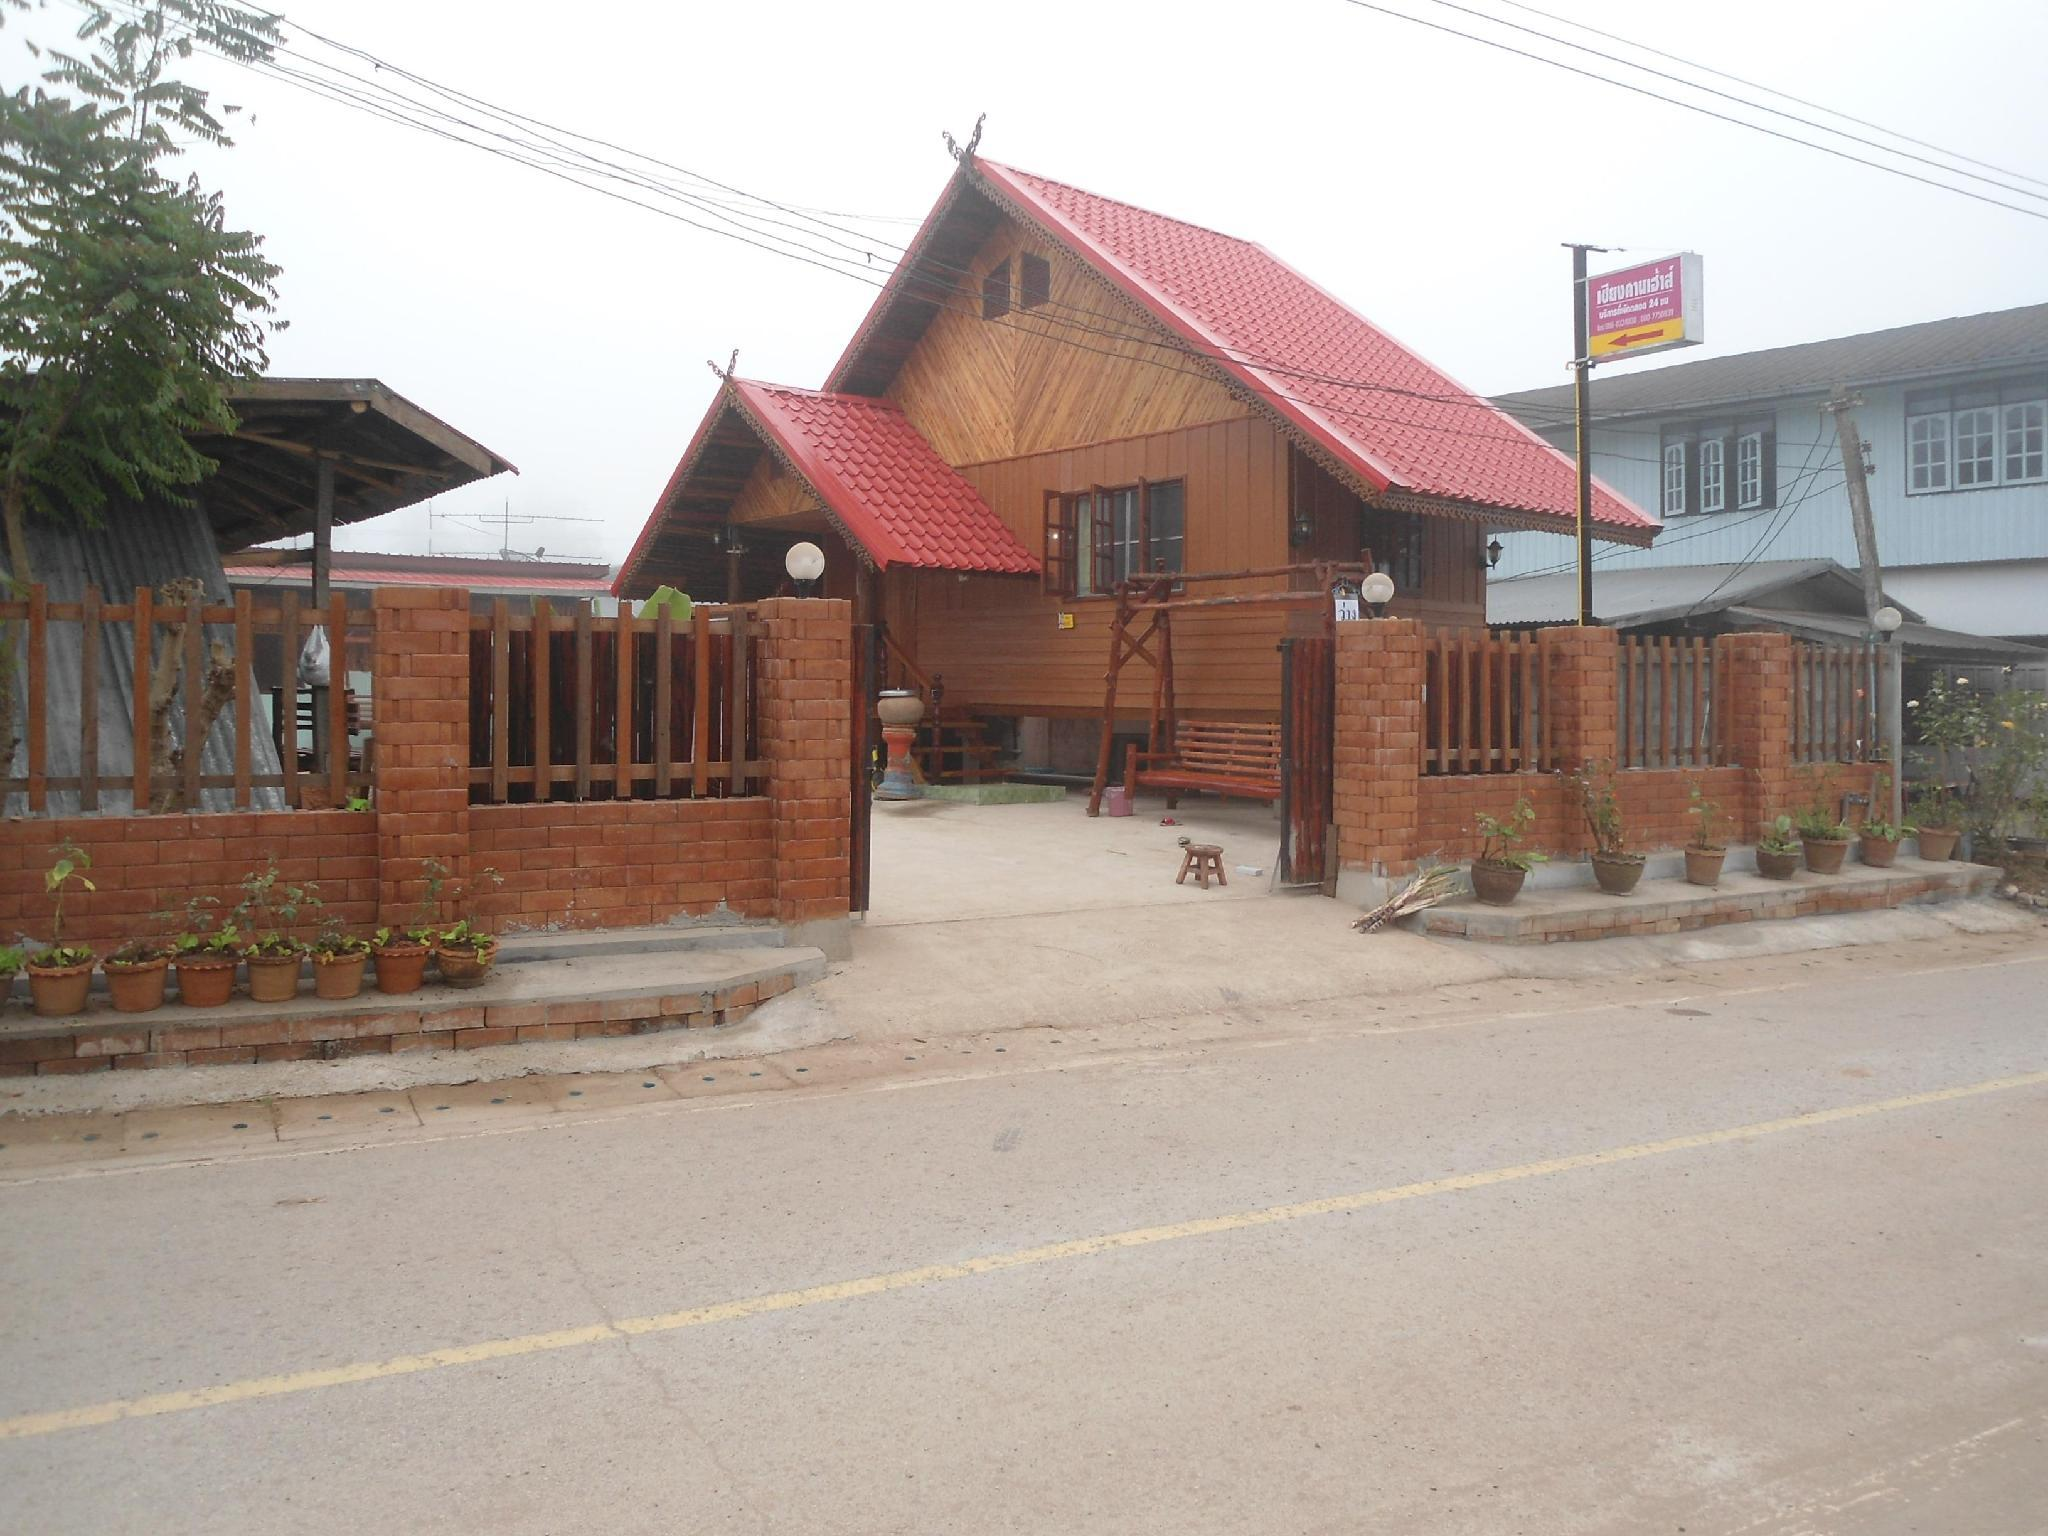 Rumah Small (Small House)